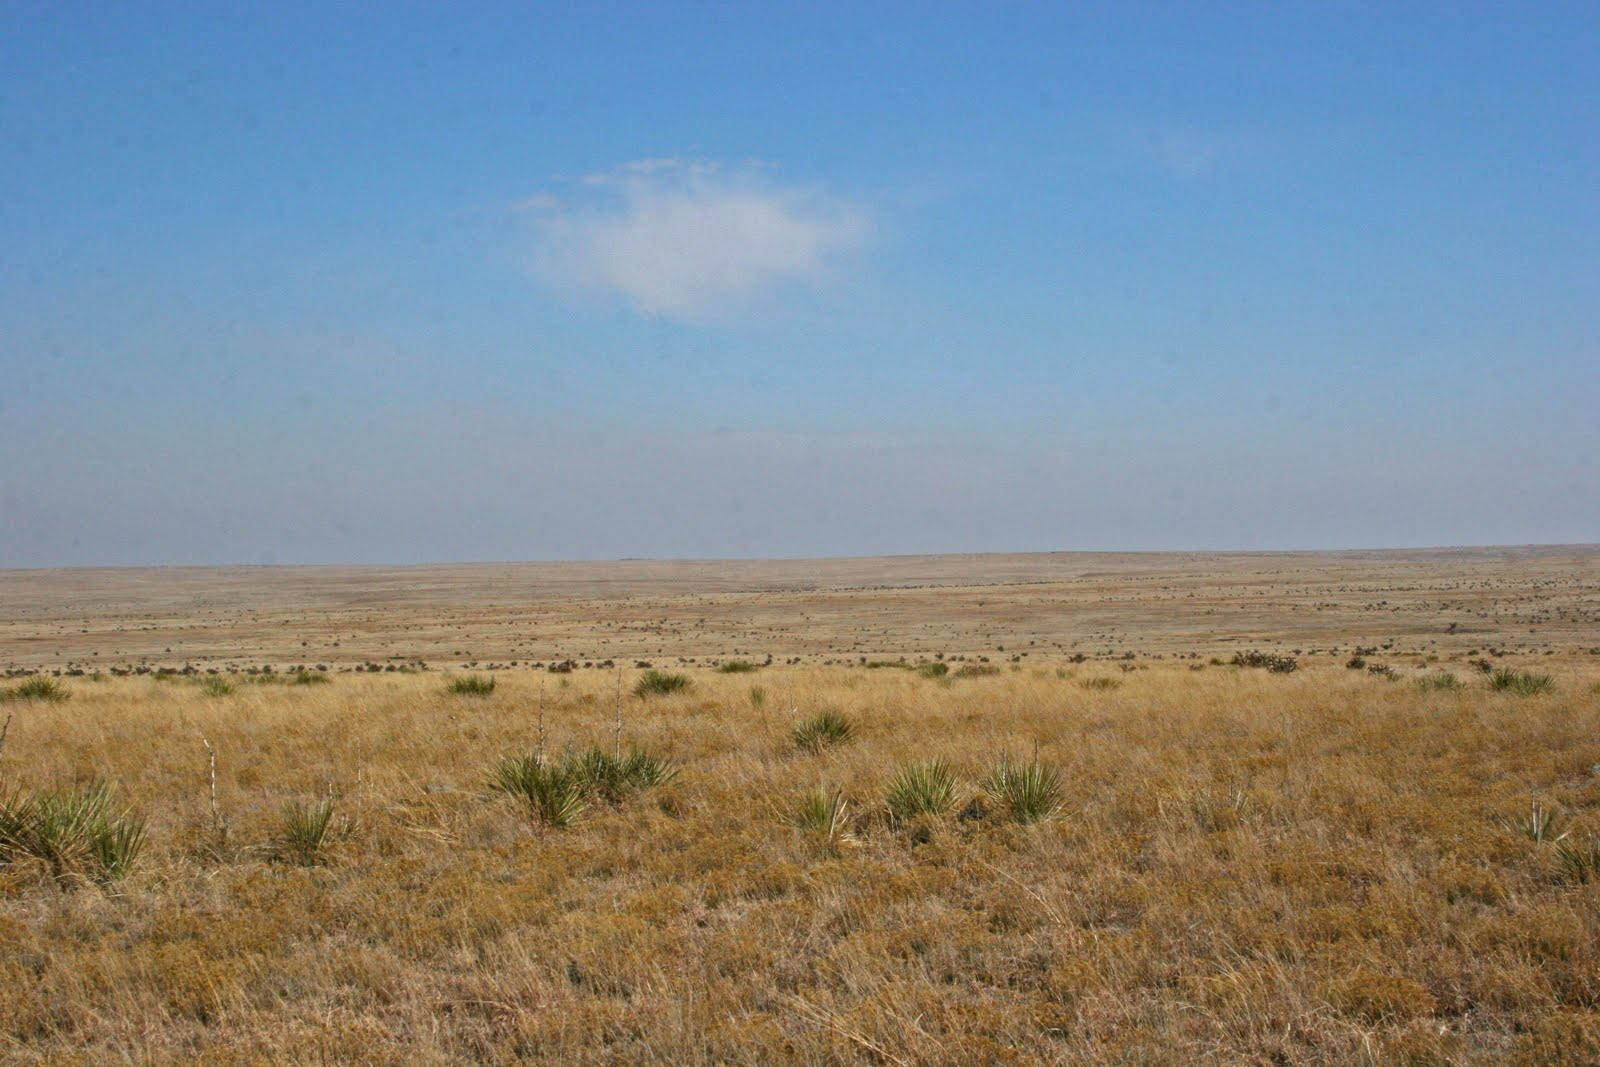 The Homesteaders Were Drawn To The Great Plains For The Fertile Soil And  Their Actions Altered The Landscape, But Even So, I Find This Area  Beautiful